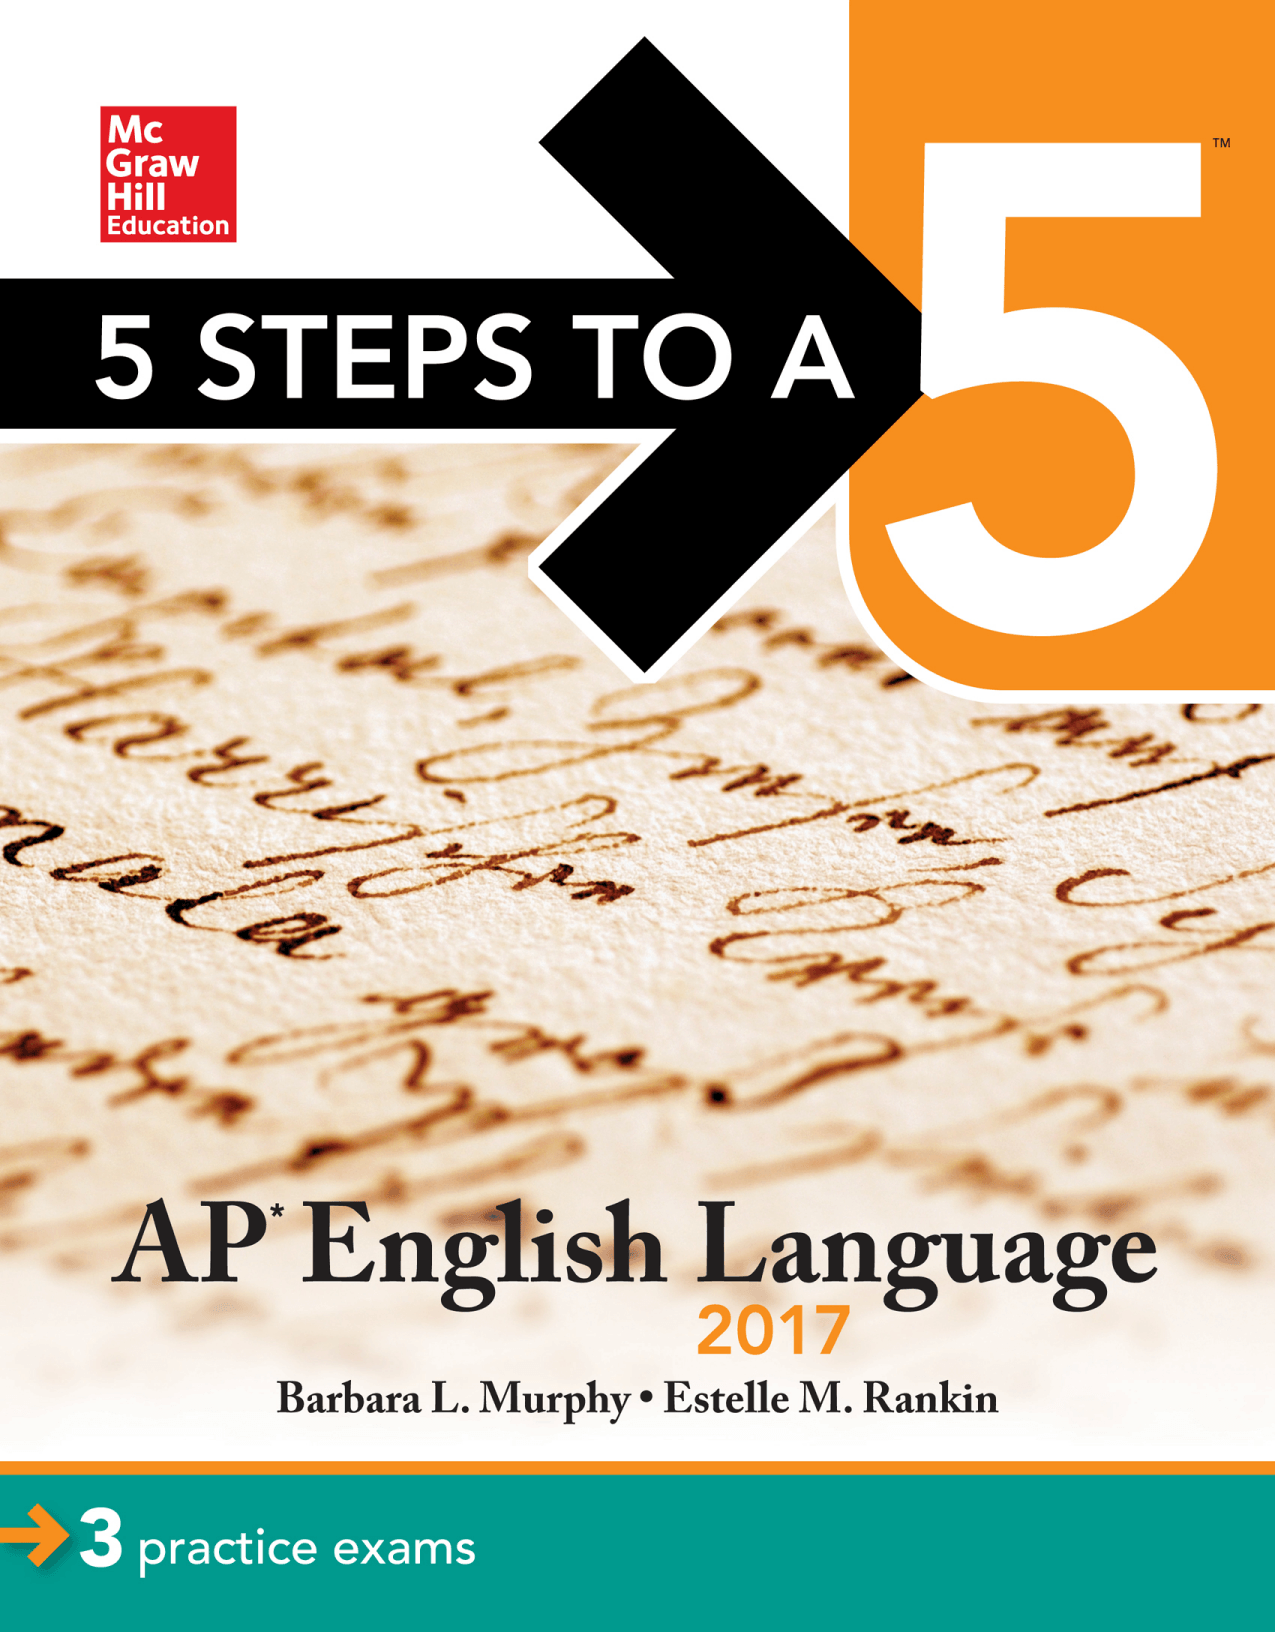 5 steps 5 writing ap english essay 5 steps to a 5 writing the ap english essay download free pdf books hosted by dakota ward on october 19 2018 this is a file download of 5 steps to a 5 writing the ap english essay that reader could be got it by your self at wwwnasoworg.